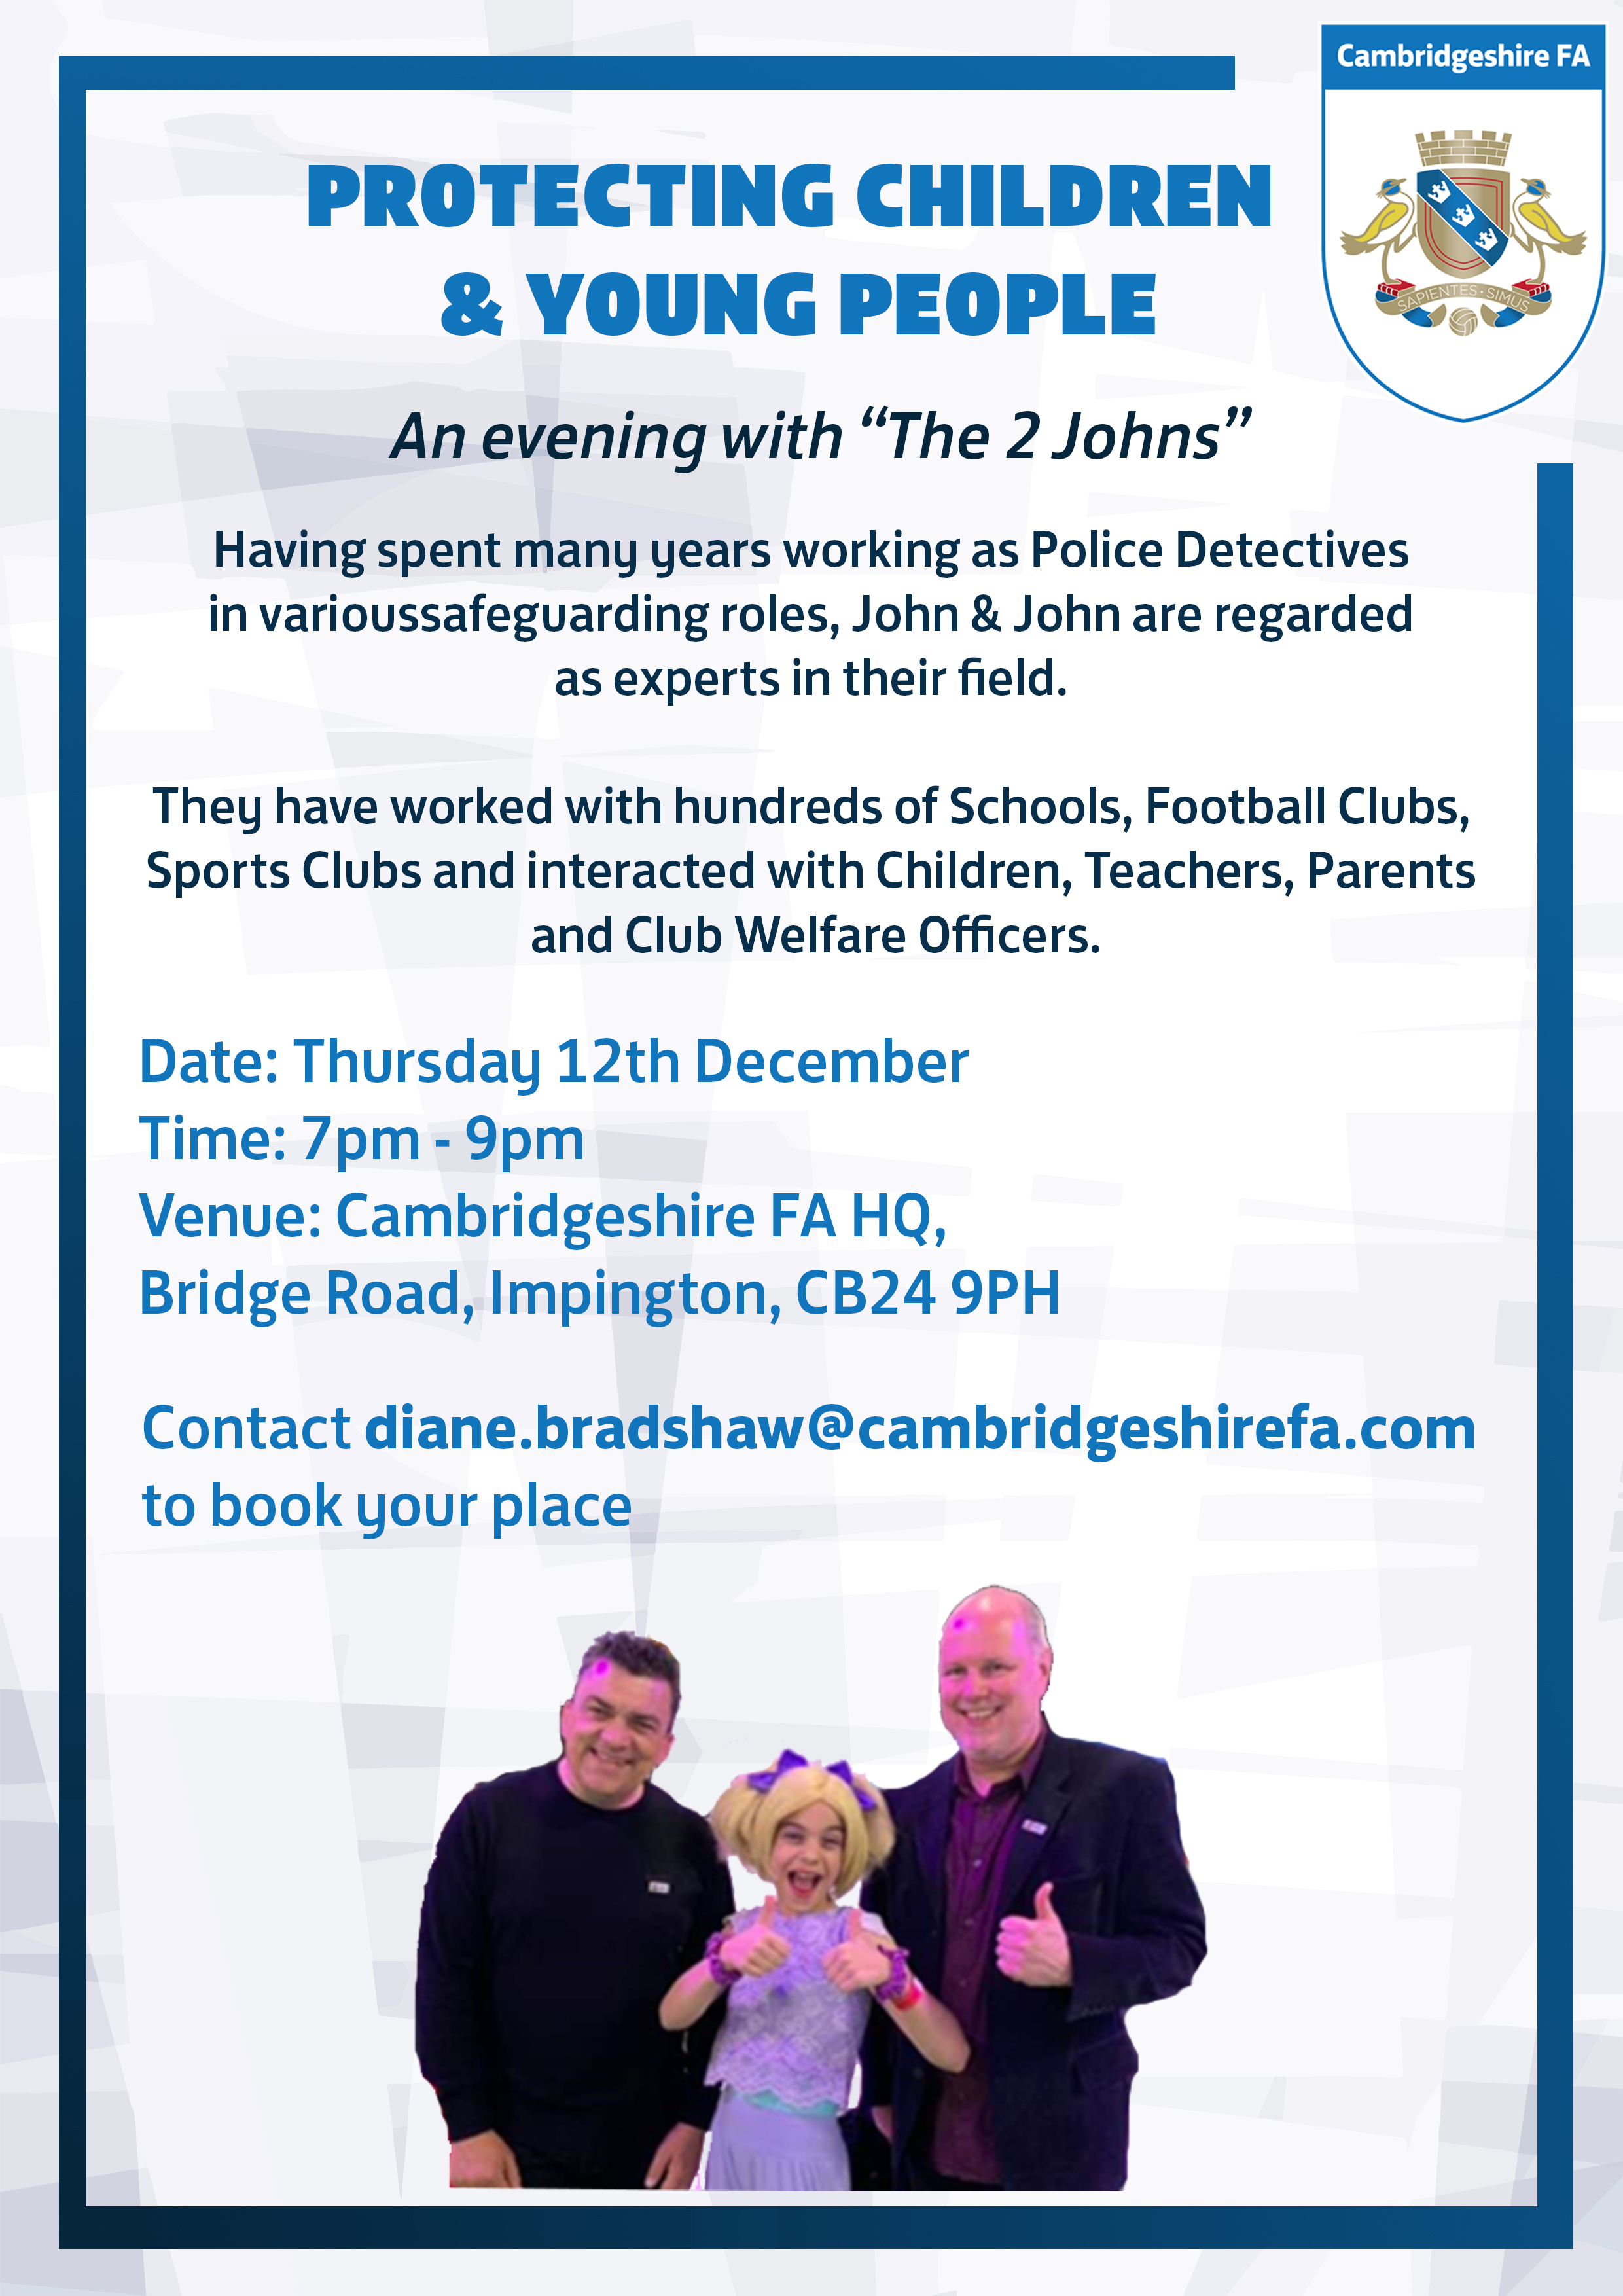 An evening with the 2 johns